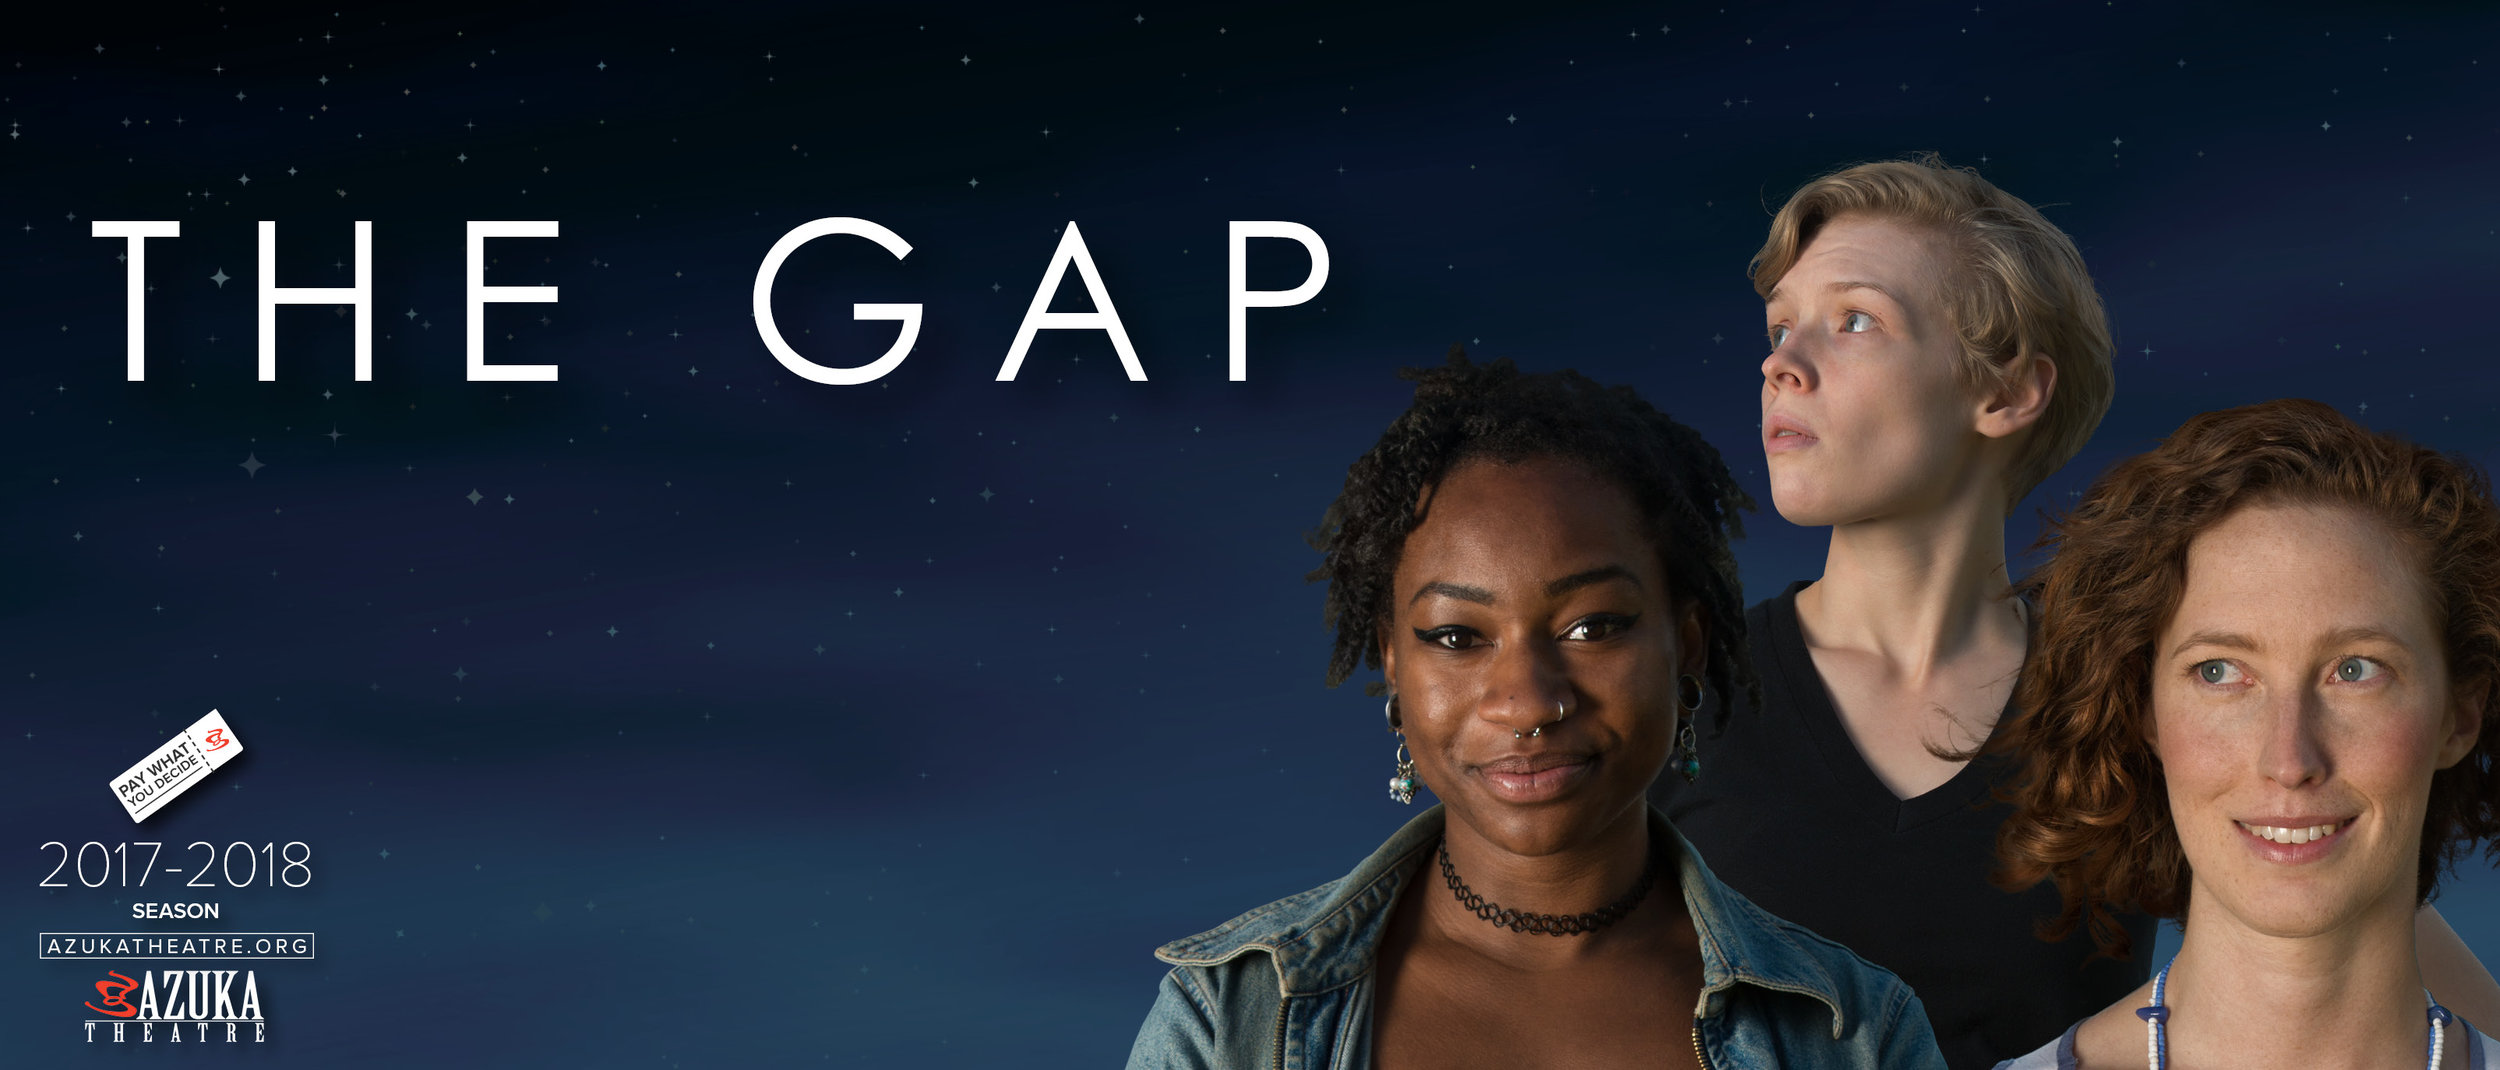 Website_Header_The Gap.jpg